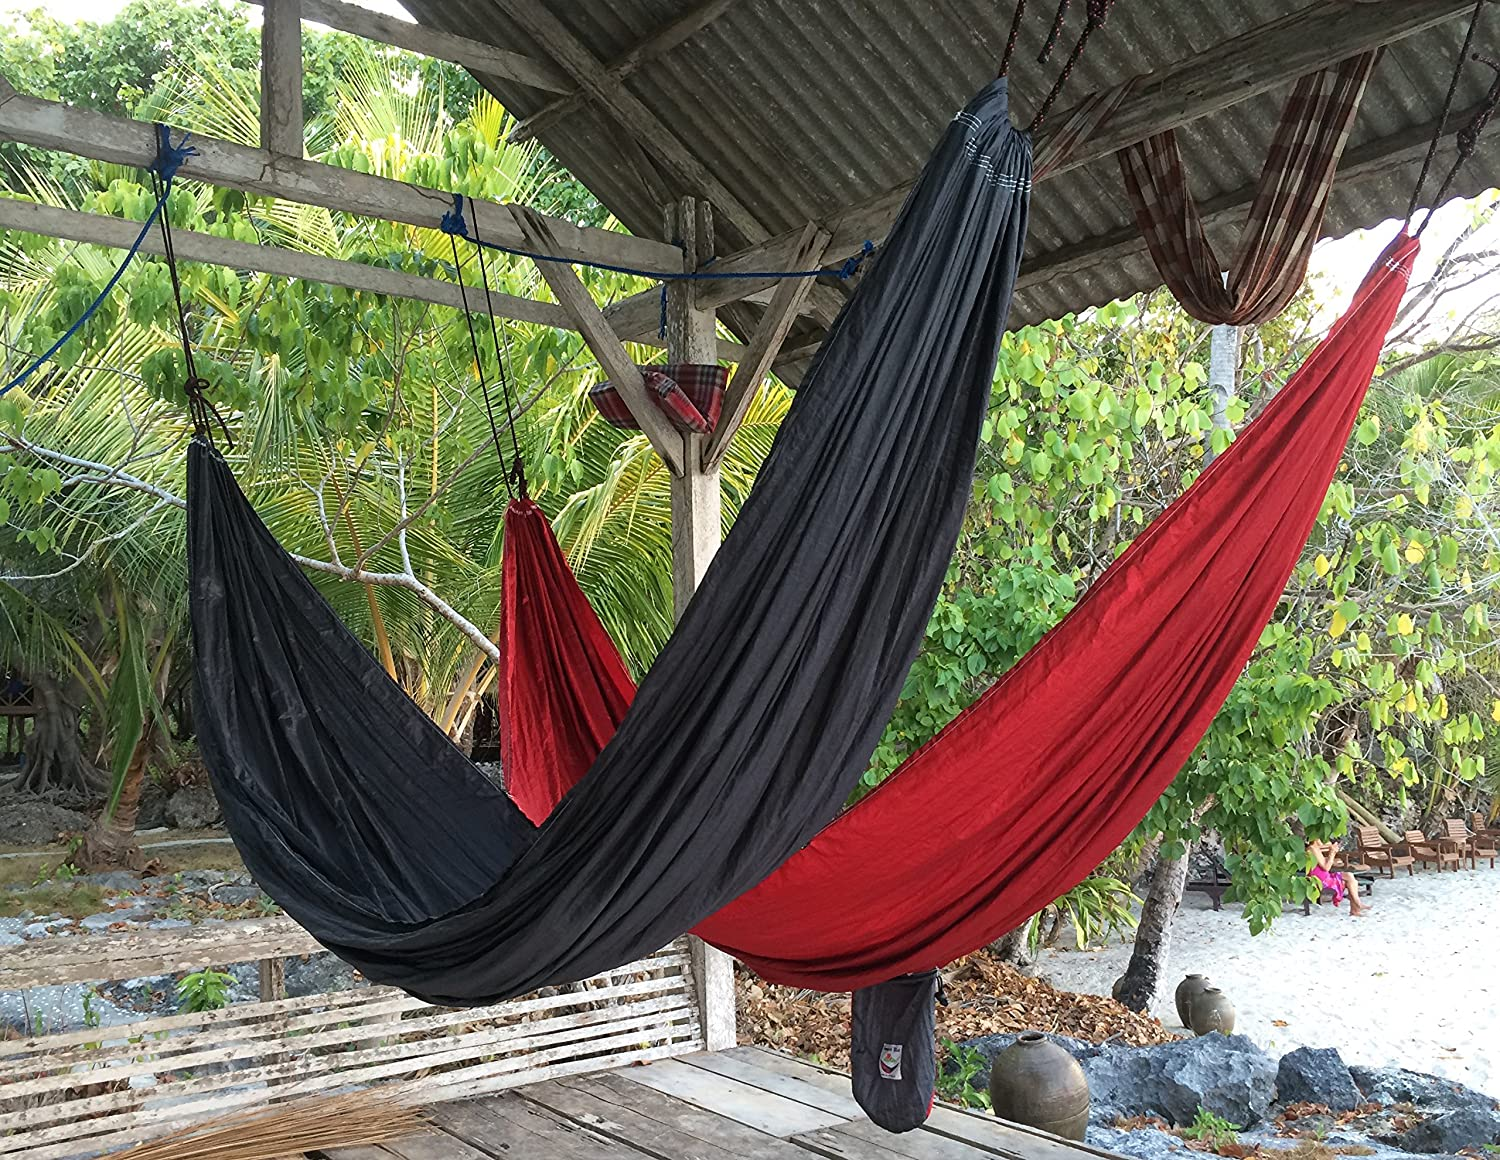 Hammock Bliss Tandem – One Hammock with Two Separate Spaces Allows Two People to Hang Together in Bliss – Great for Couples